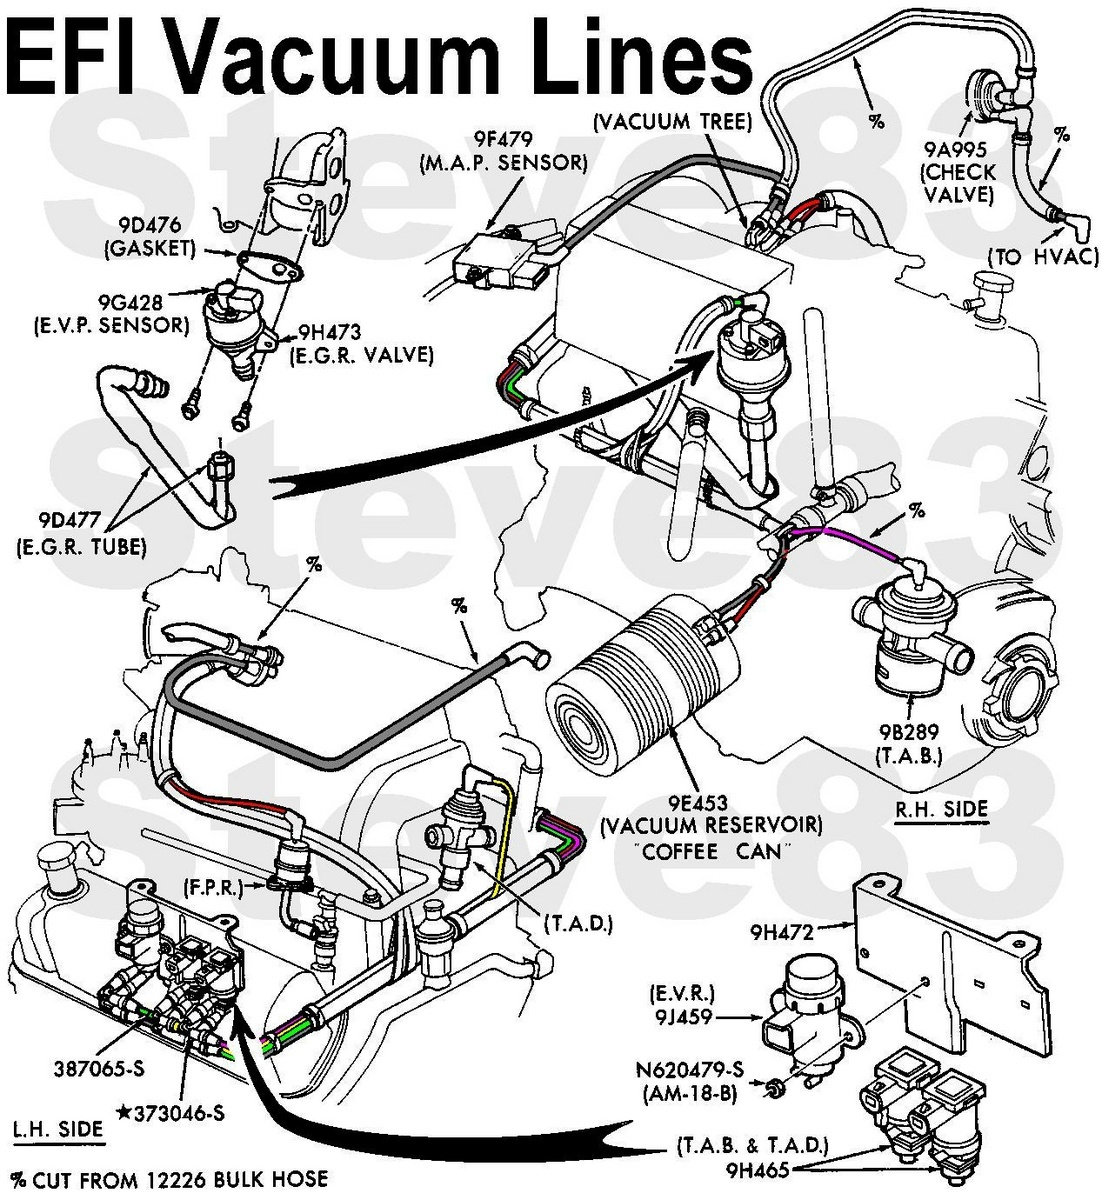 93 ford explorer wiring diagram pdf with 93 Mustang 5 0 Engine Diagram on 2002 Ford Escape Shift Linkage Diagram further Ram D150 Wiring Diagram For 1991 moreover 32261 2004 Xl7 Service Engine Soon Light furthermore Headlight Relay Switch Location 1996 as well 5rmgr Ford Ranger Went One Morning Start 1998 Ford Ranger.